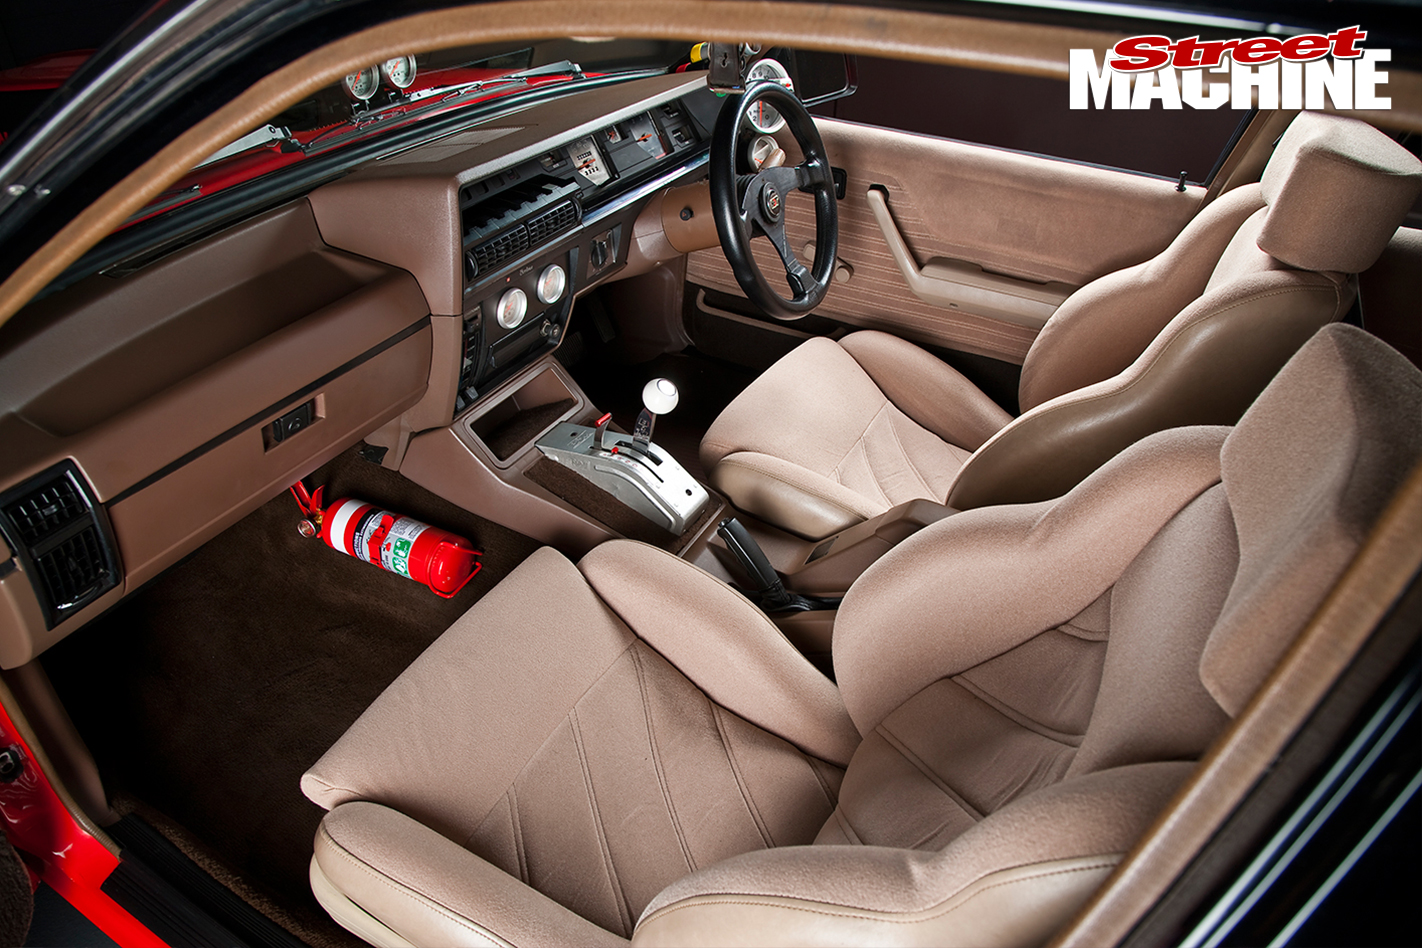 Holden -VK-Commodore -interior -front